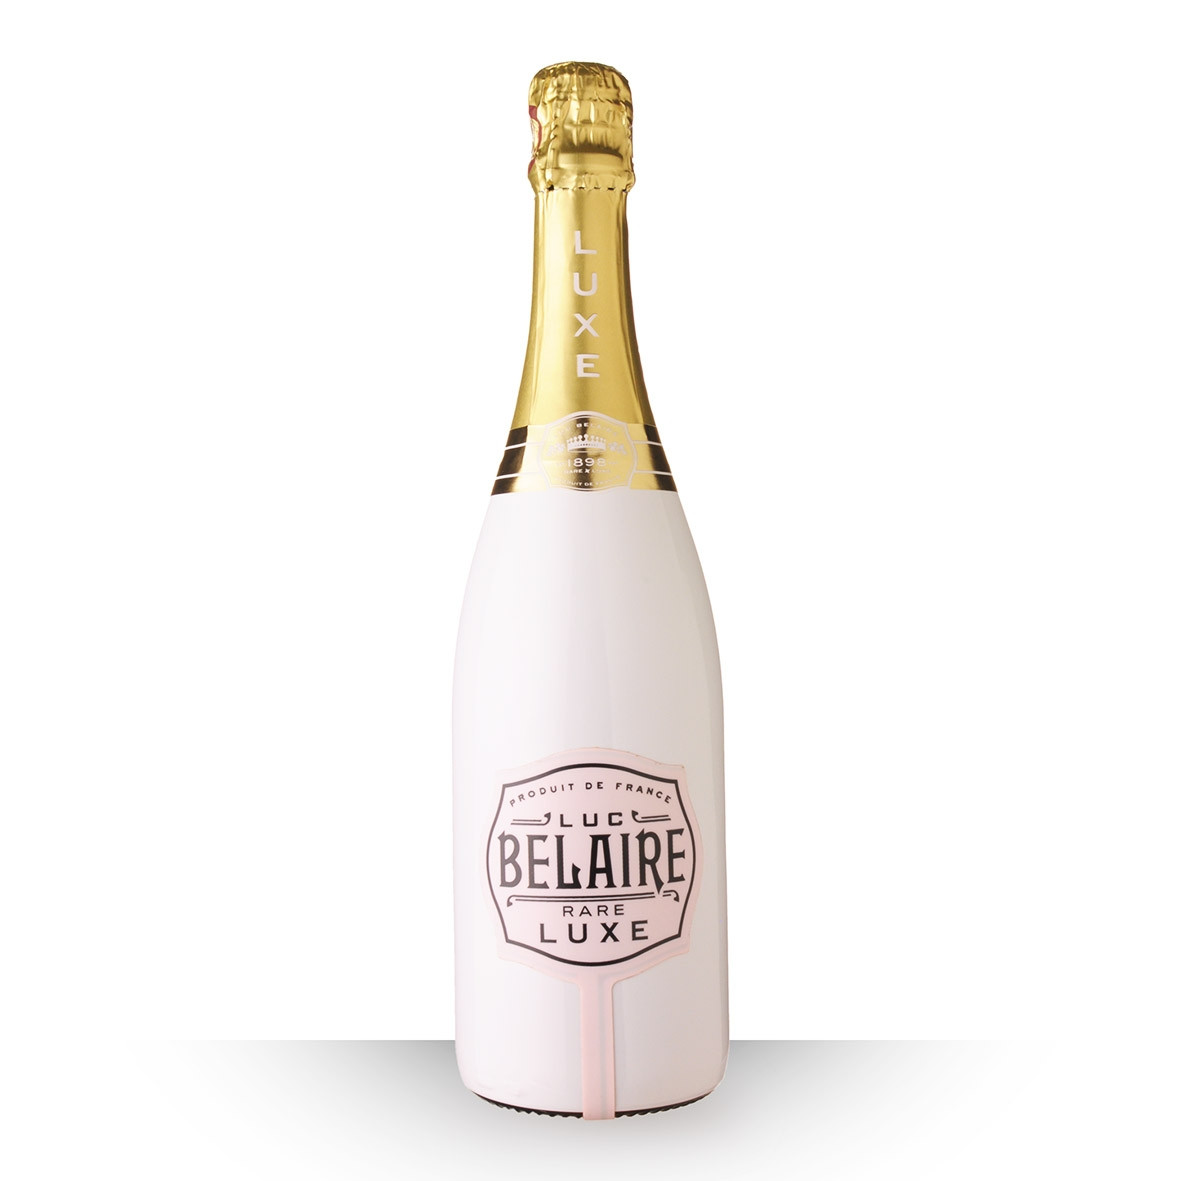 Luc Belaire Fantôme Luxe Blanc 75cl www.odyssee-vins.com